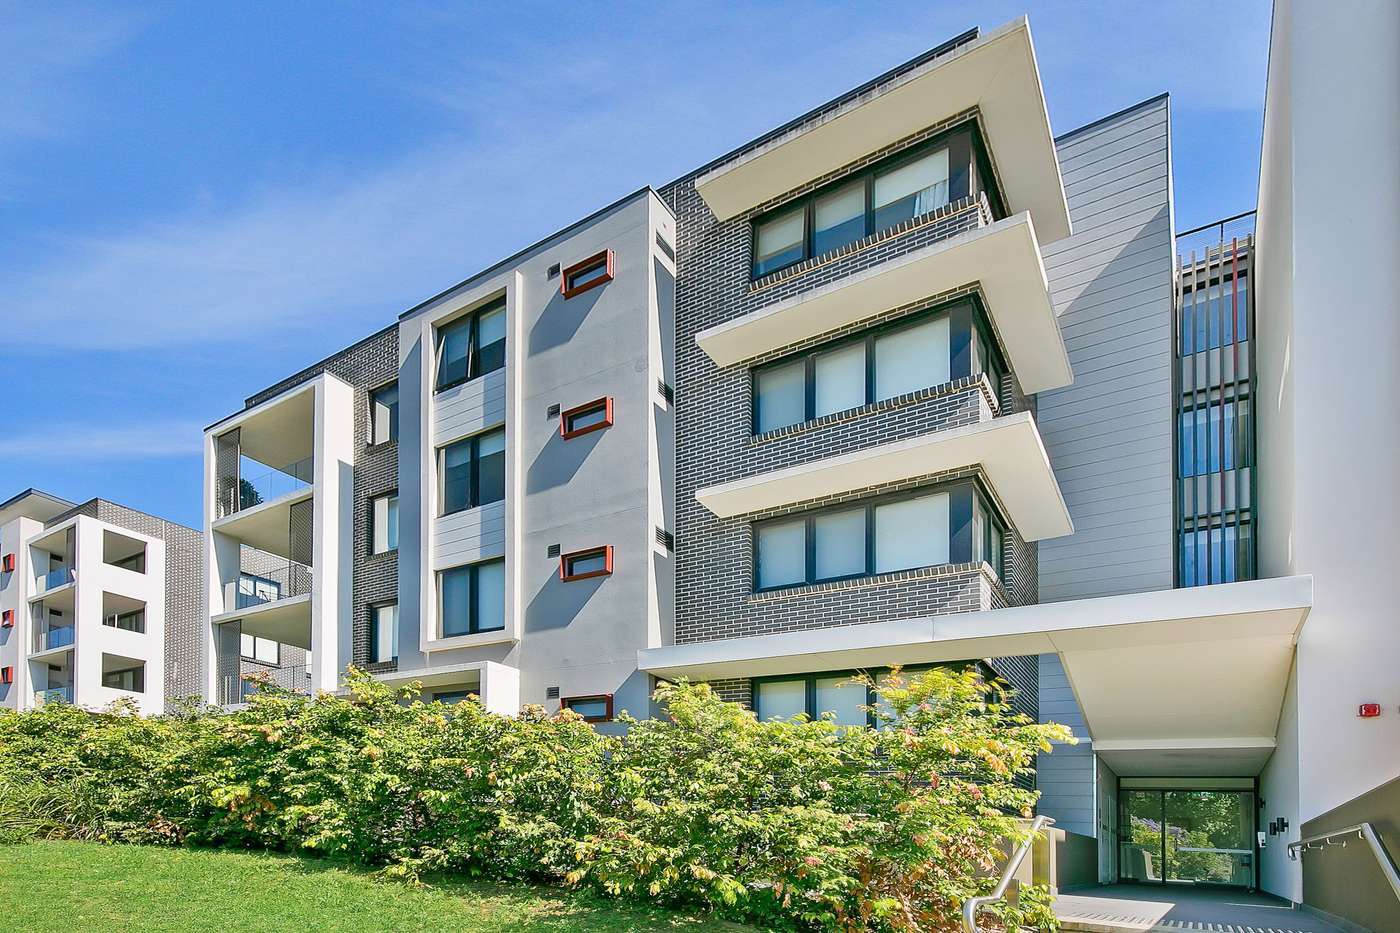 Main view of Homely apartment listing, 43/17-25 Boundary Street, Roseville, NSW 2069